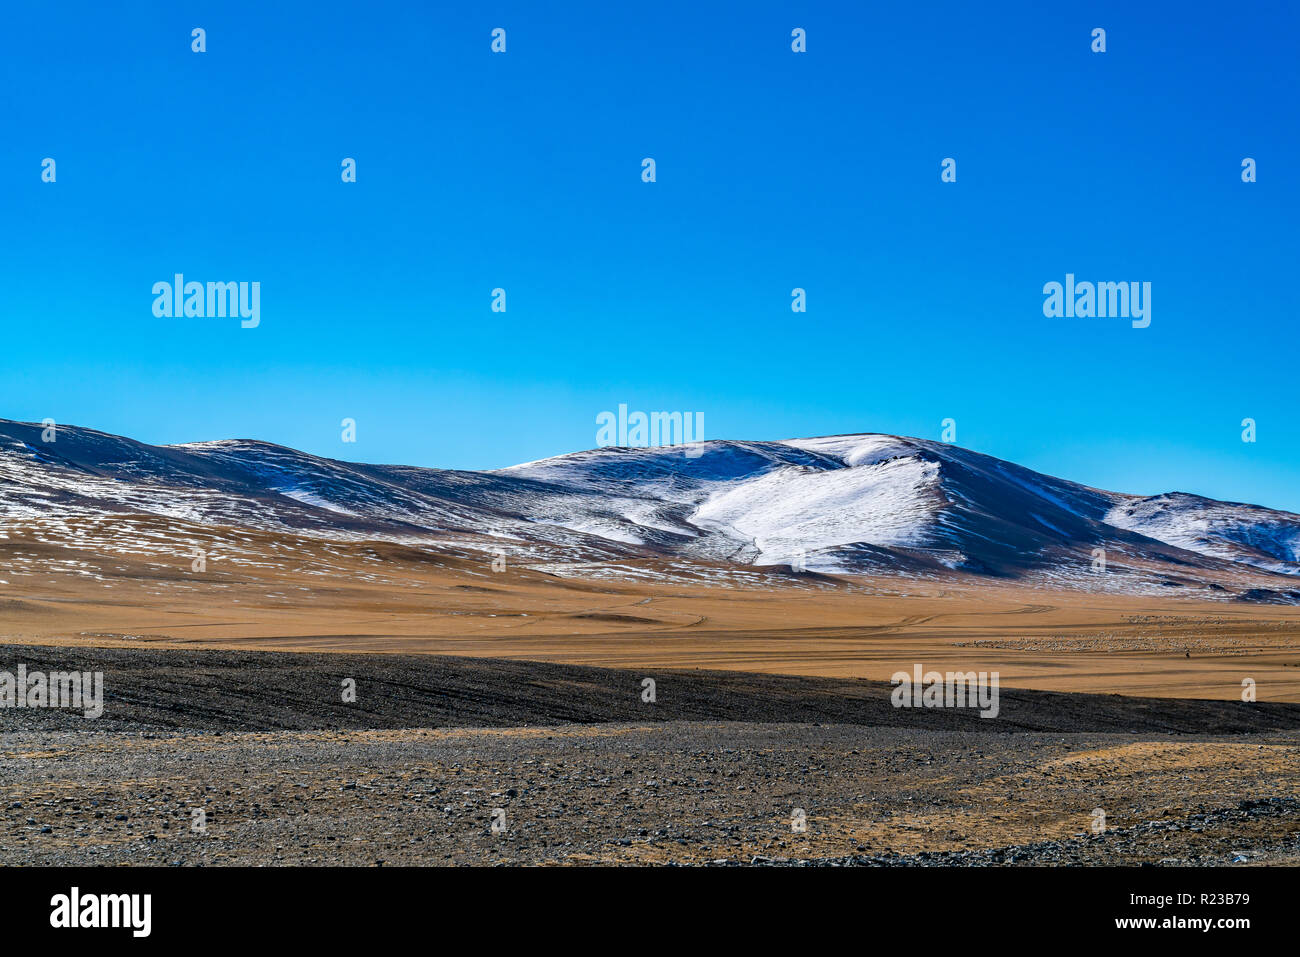 View of snow mountain against the blue sky and the steppe in Ulgii, Mongolia Stock Photo